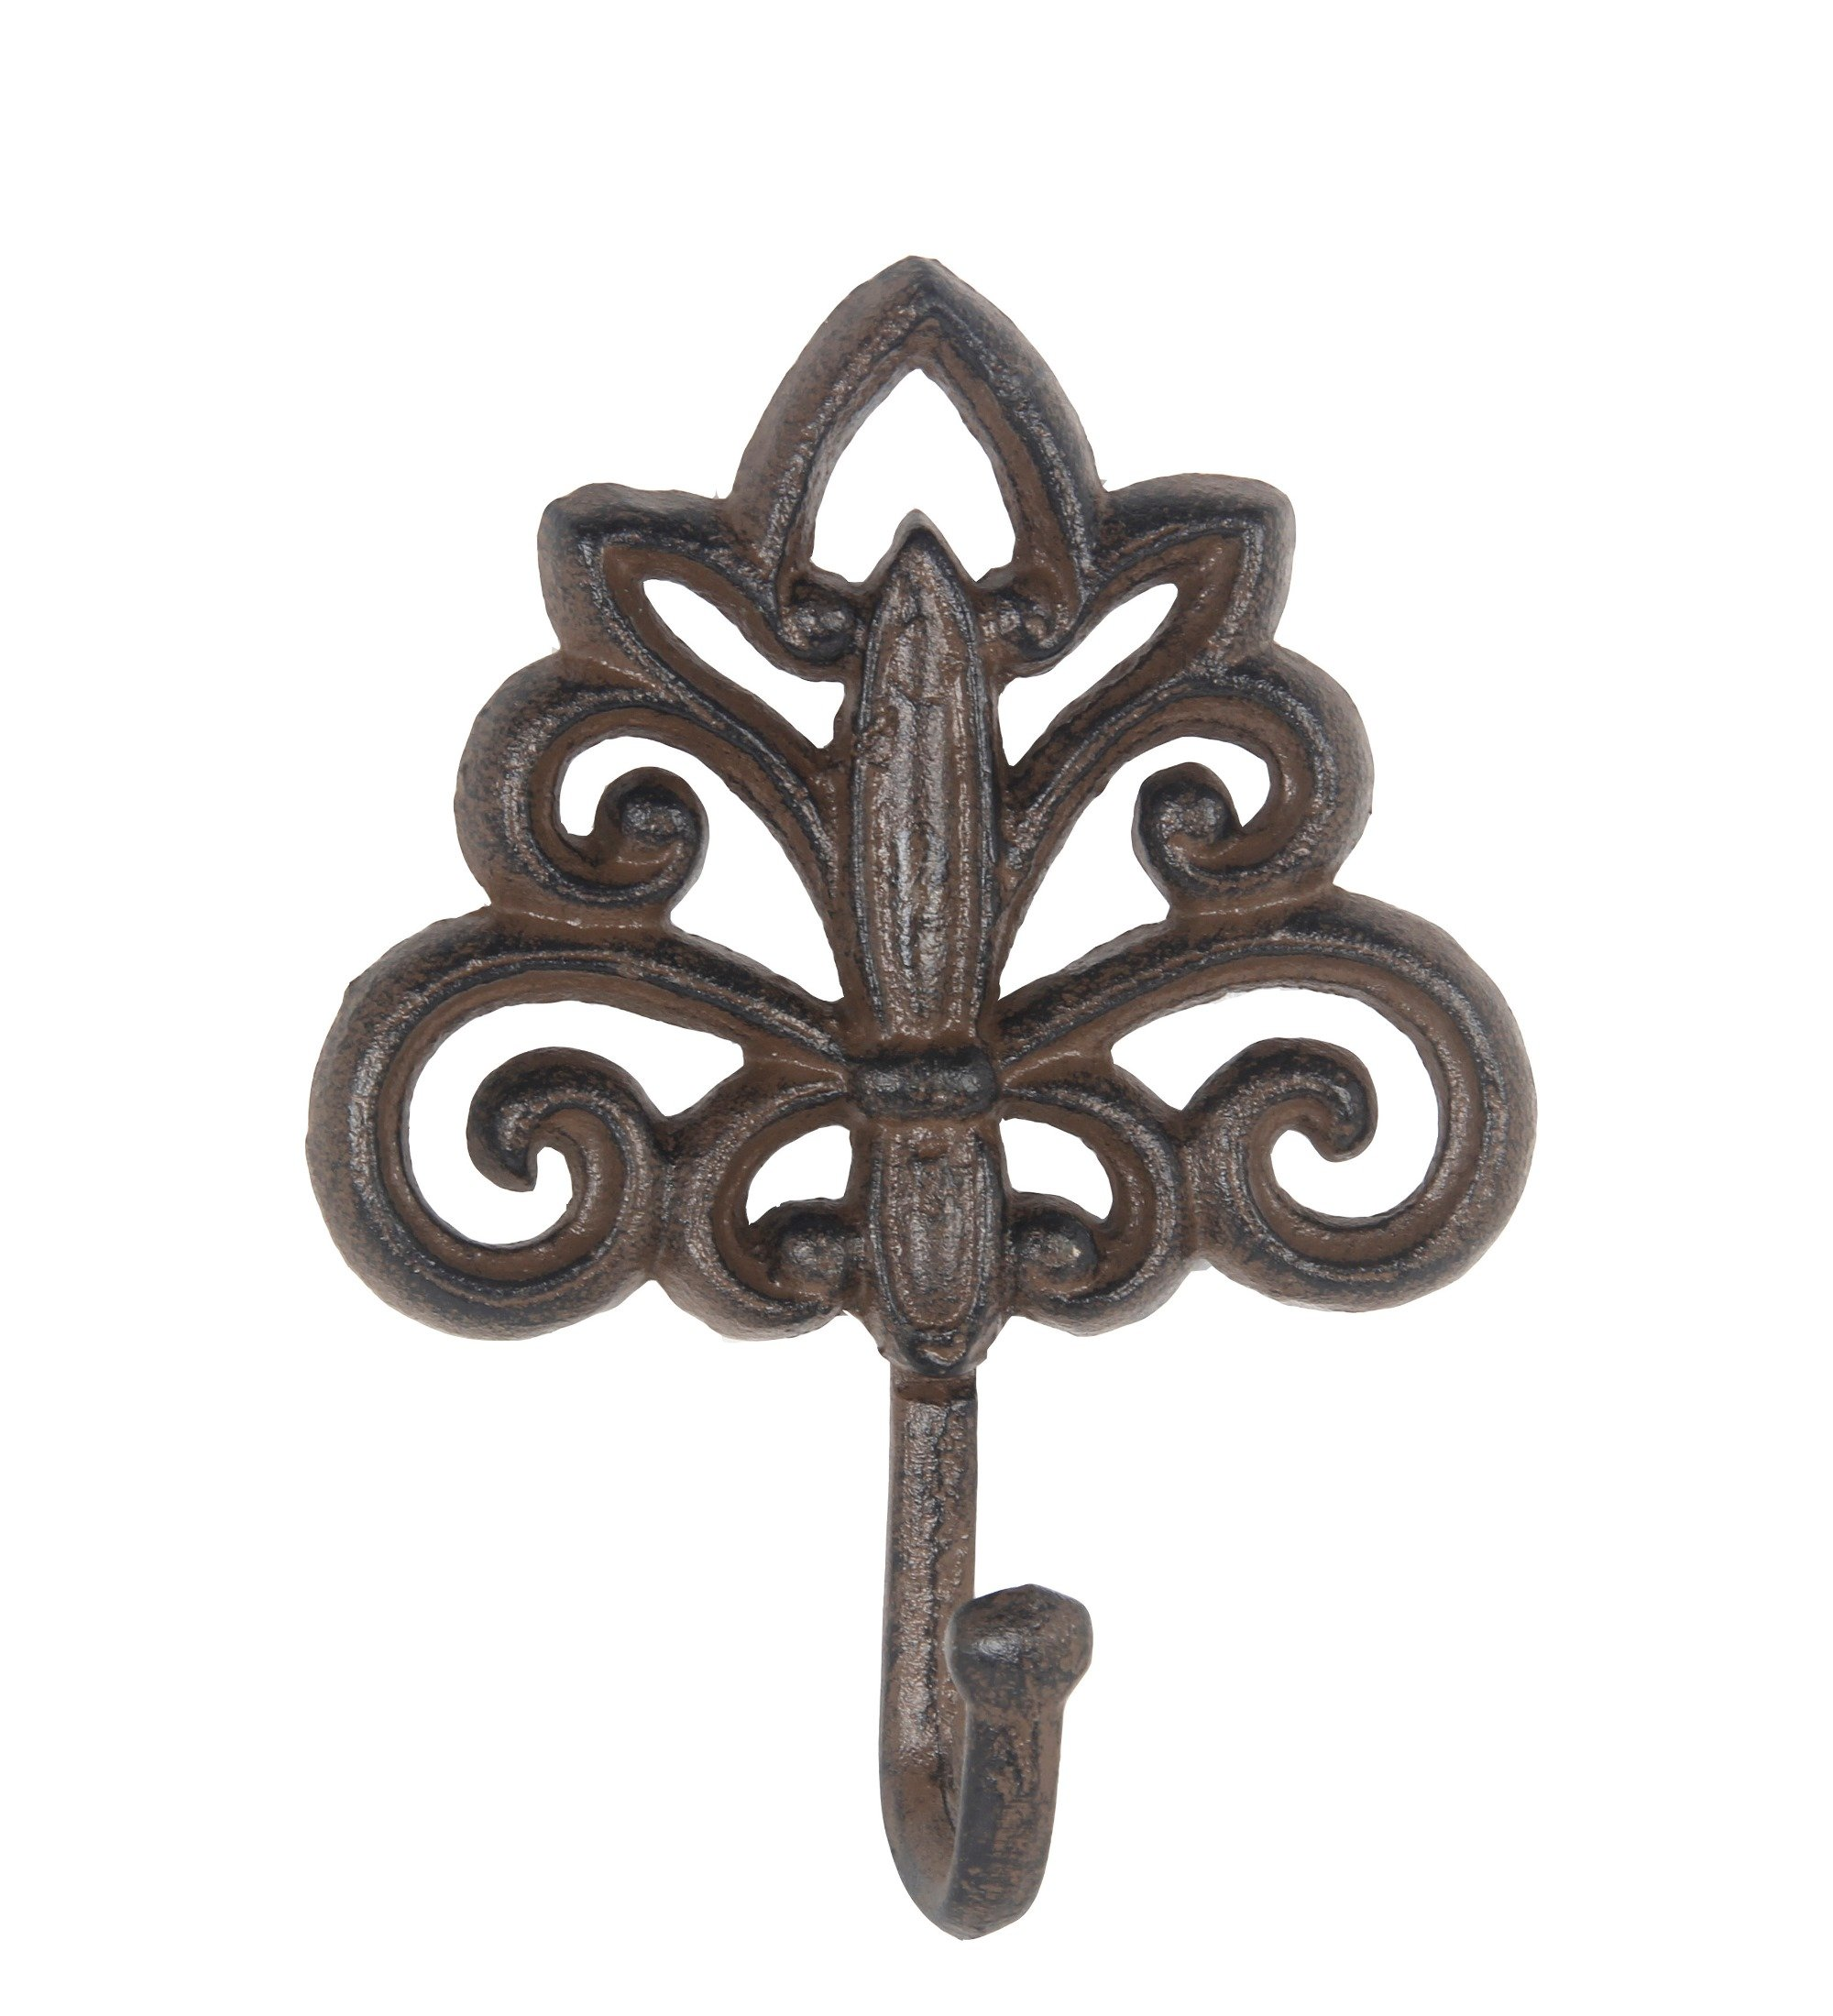 Privilege 19861 Decorative Wall Hook Rust Furniture Replacement Parts, Brown